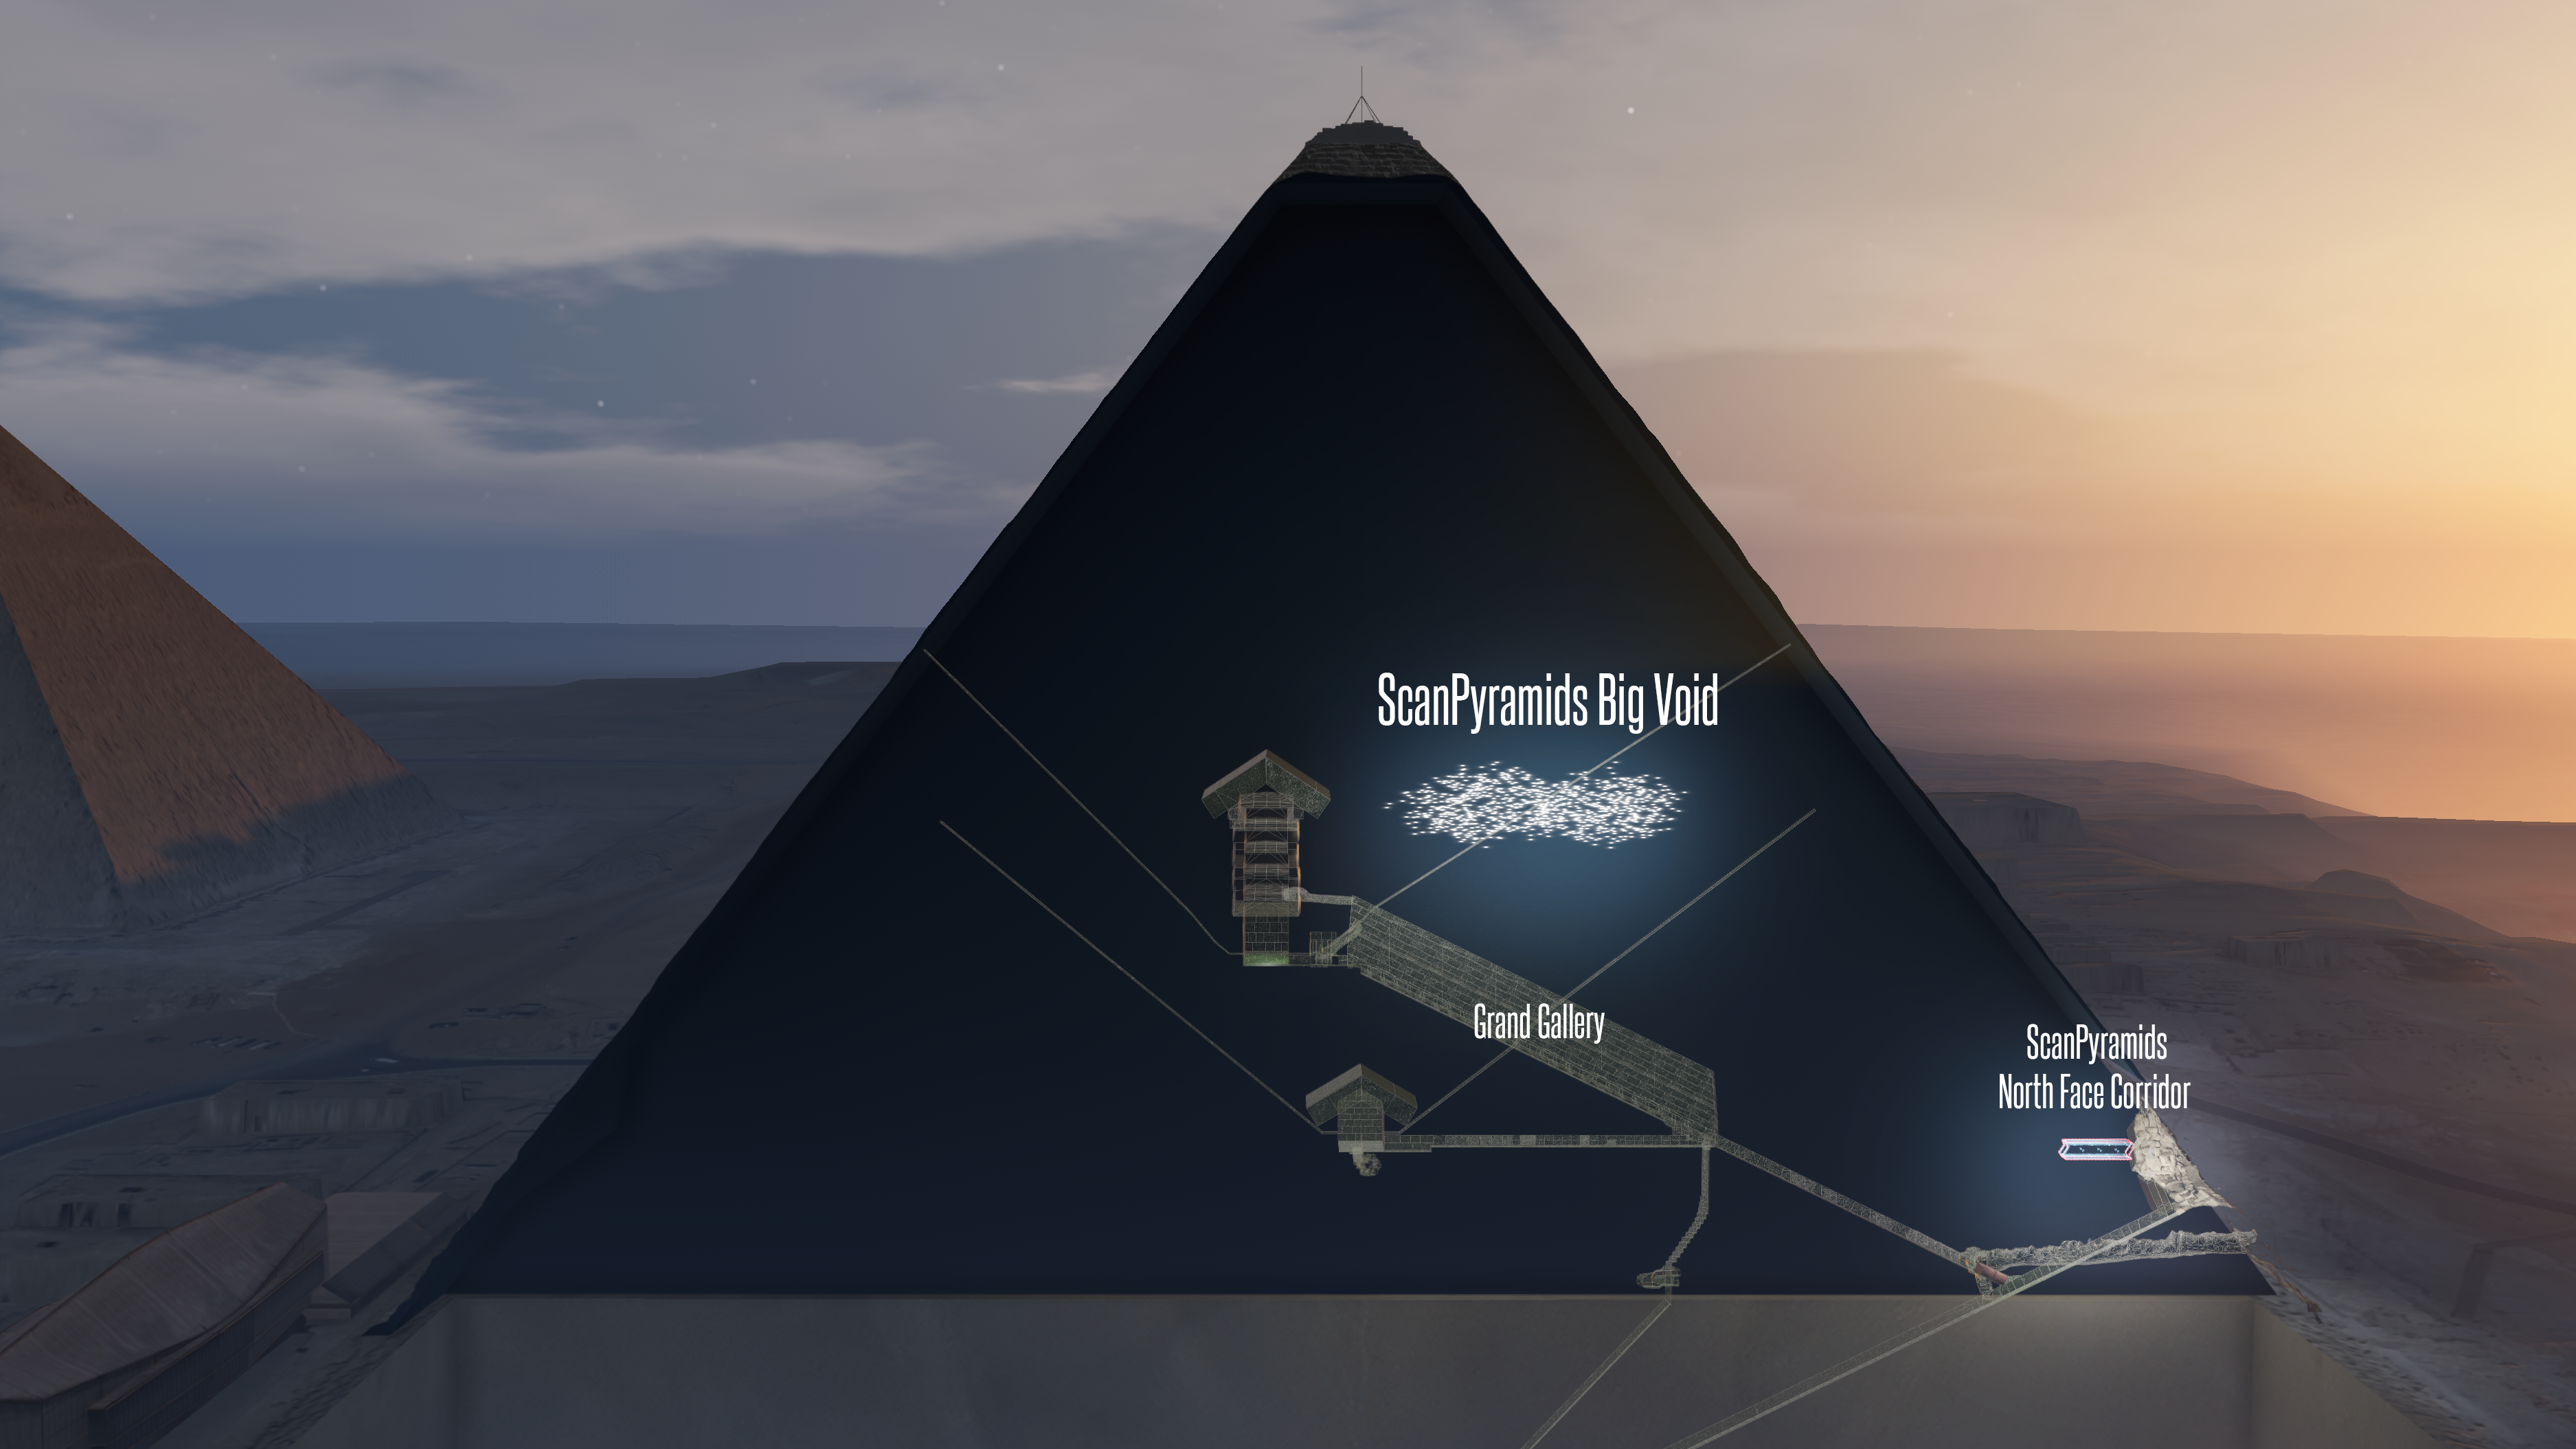 Great Pyramid: Scientists found a mysterious void inside using cosmic rays - Vox